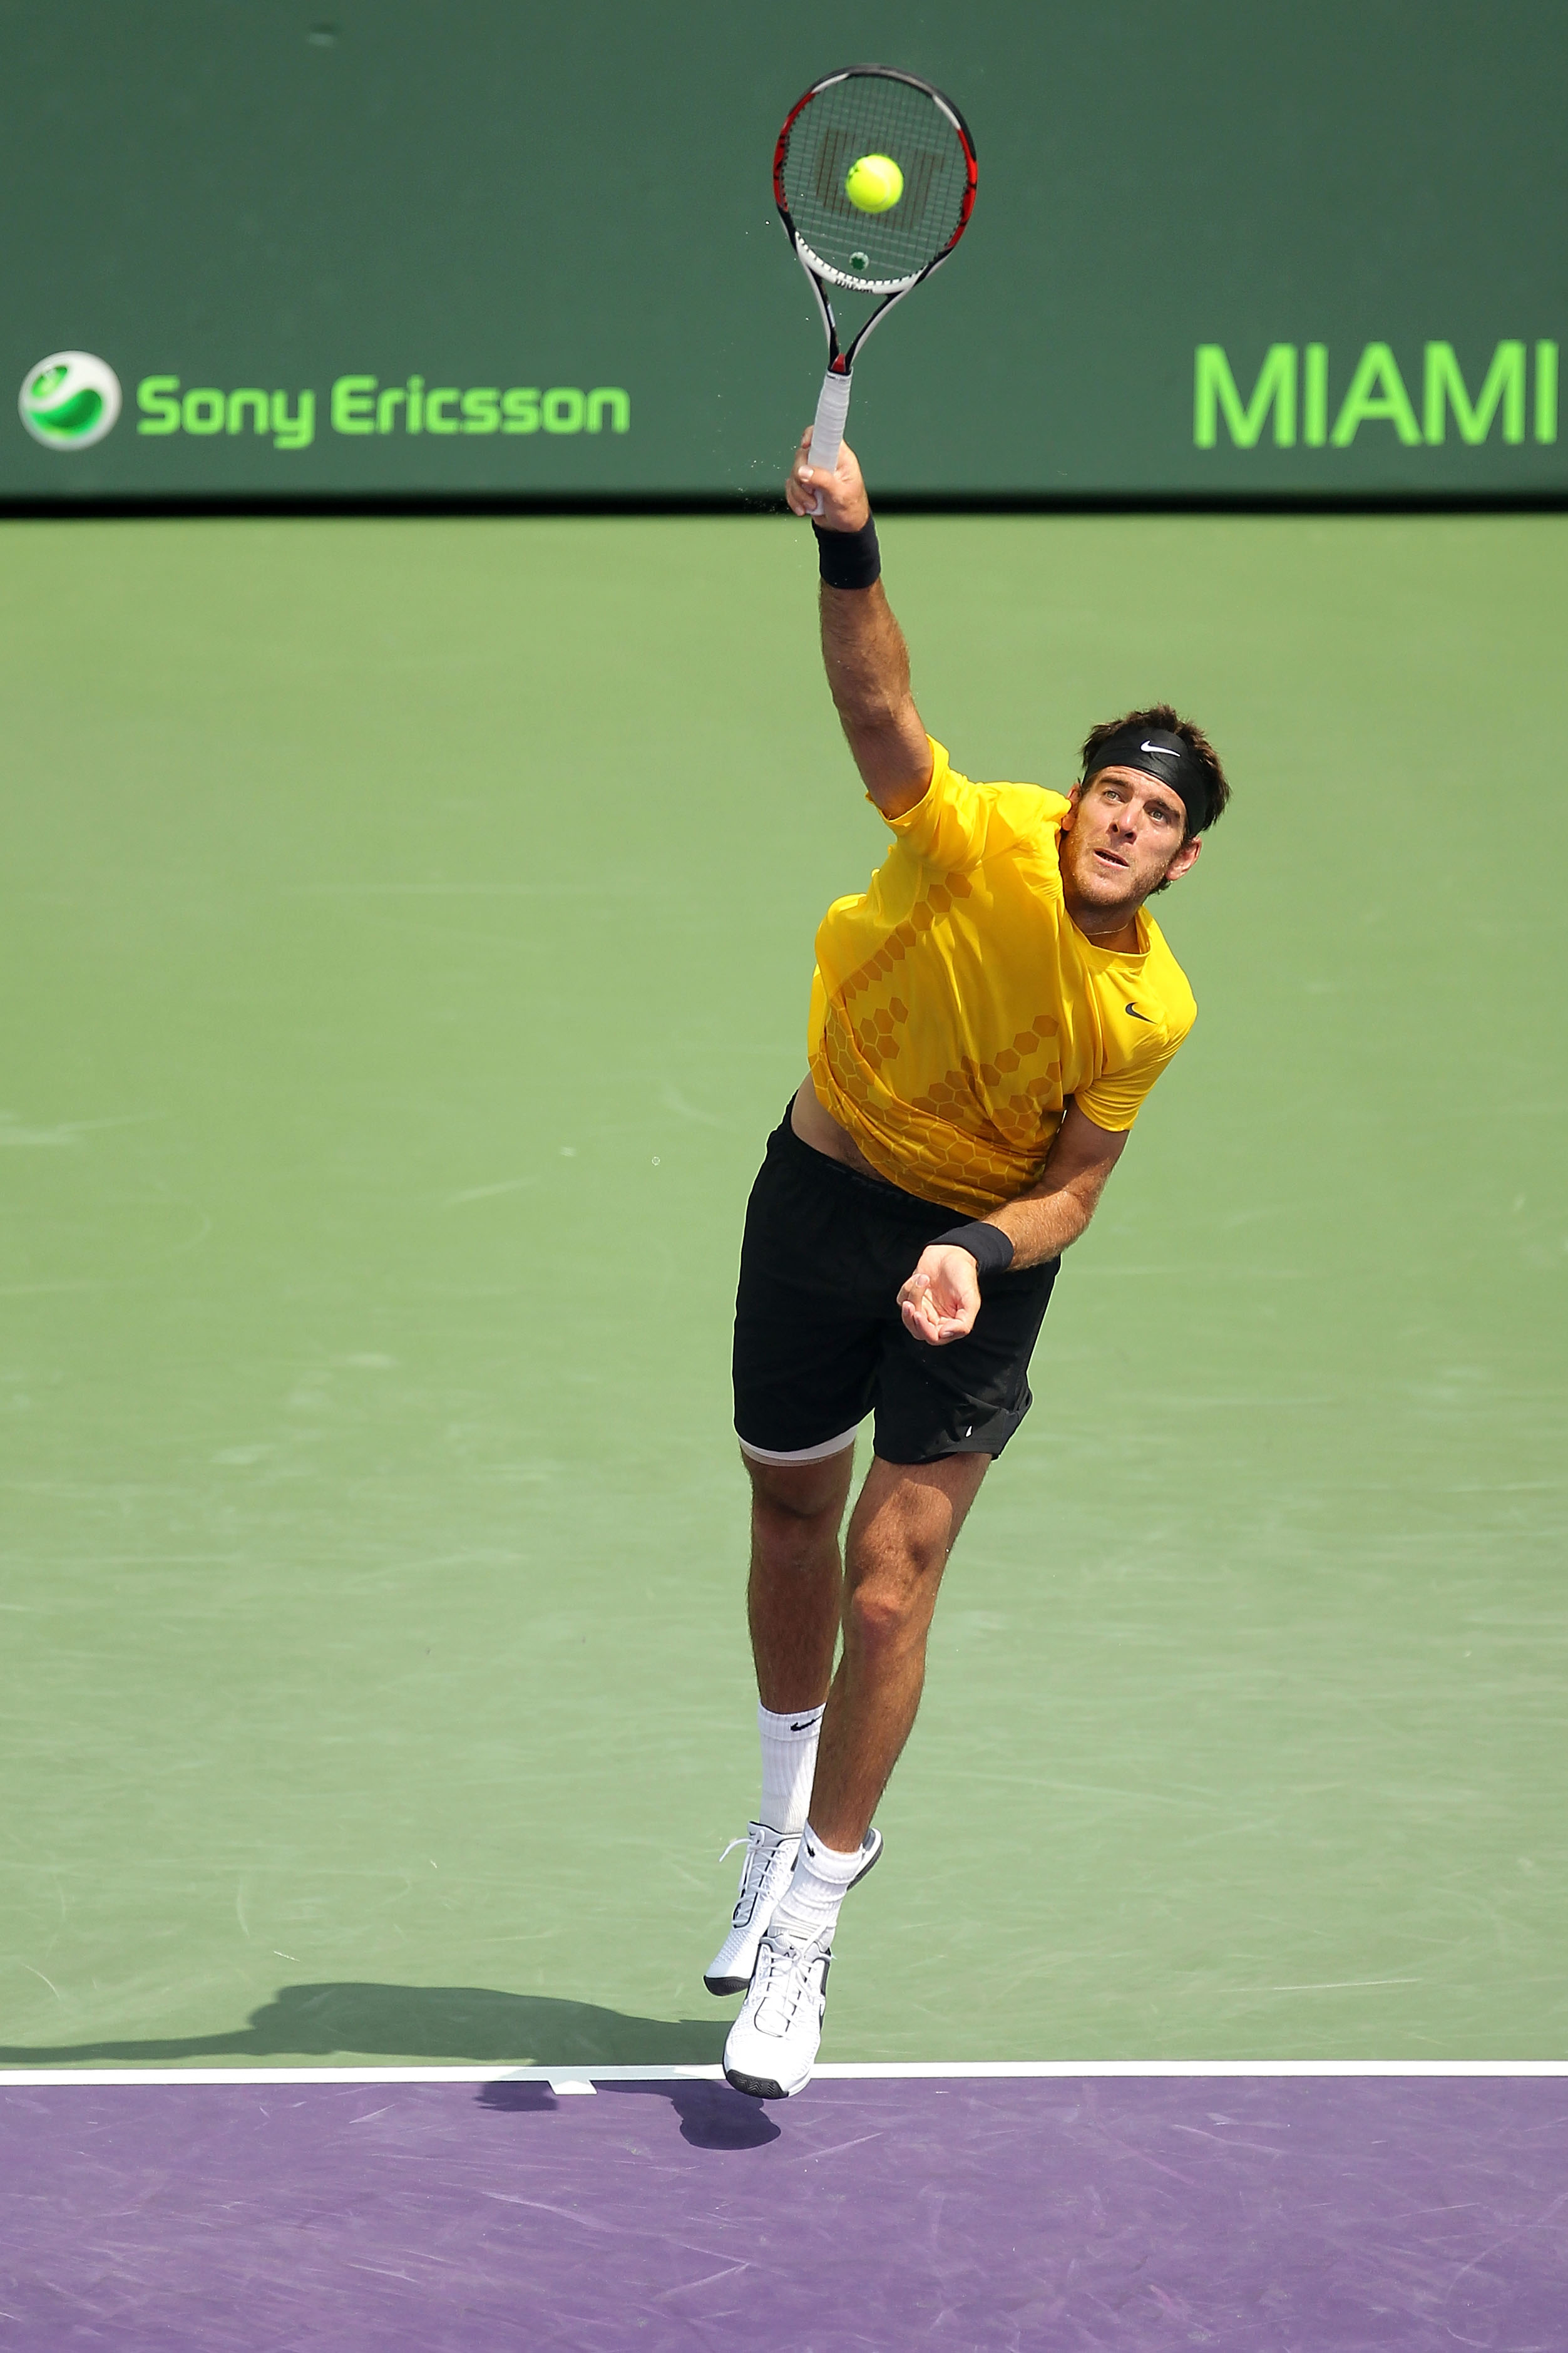 KEY BISCAYNE, FL - MARCH 29:  Juan Martin Del Potro of Argentina serves against Mardy Fish during the Sony Ericsson Open at Crandon Park Tennis Center on March 29, 2011 in Key Biscayne, Florida.  (Photo by Mike Ehrmann/Getty Images)